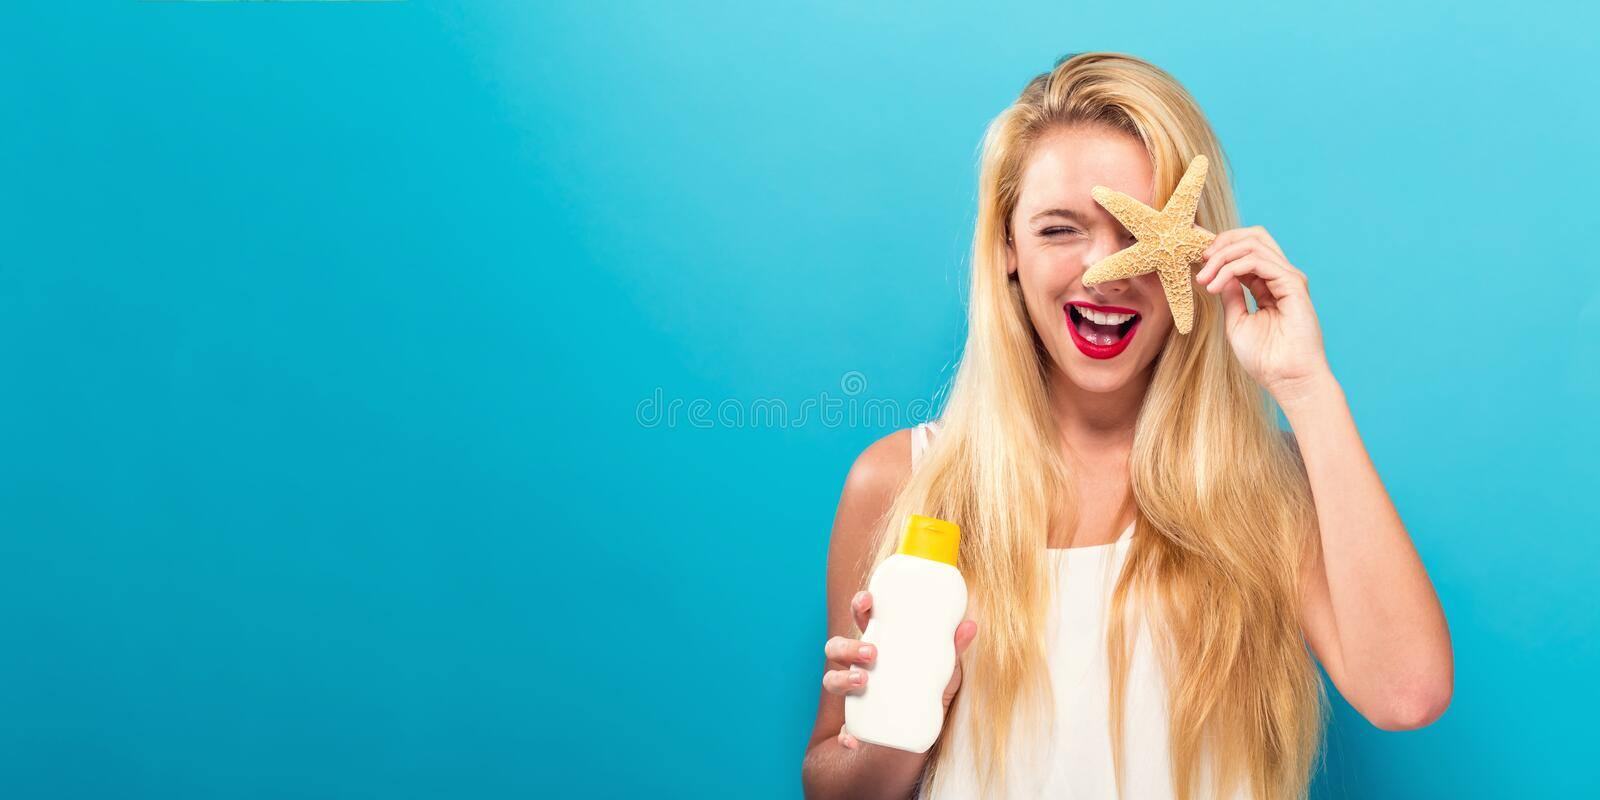 Young woman holding a bottle of sunblock royalty free stock photos